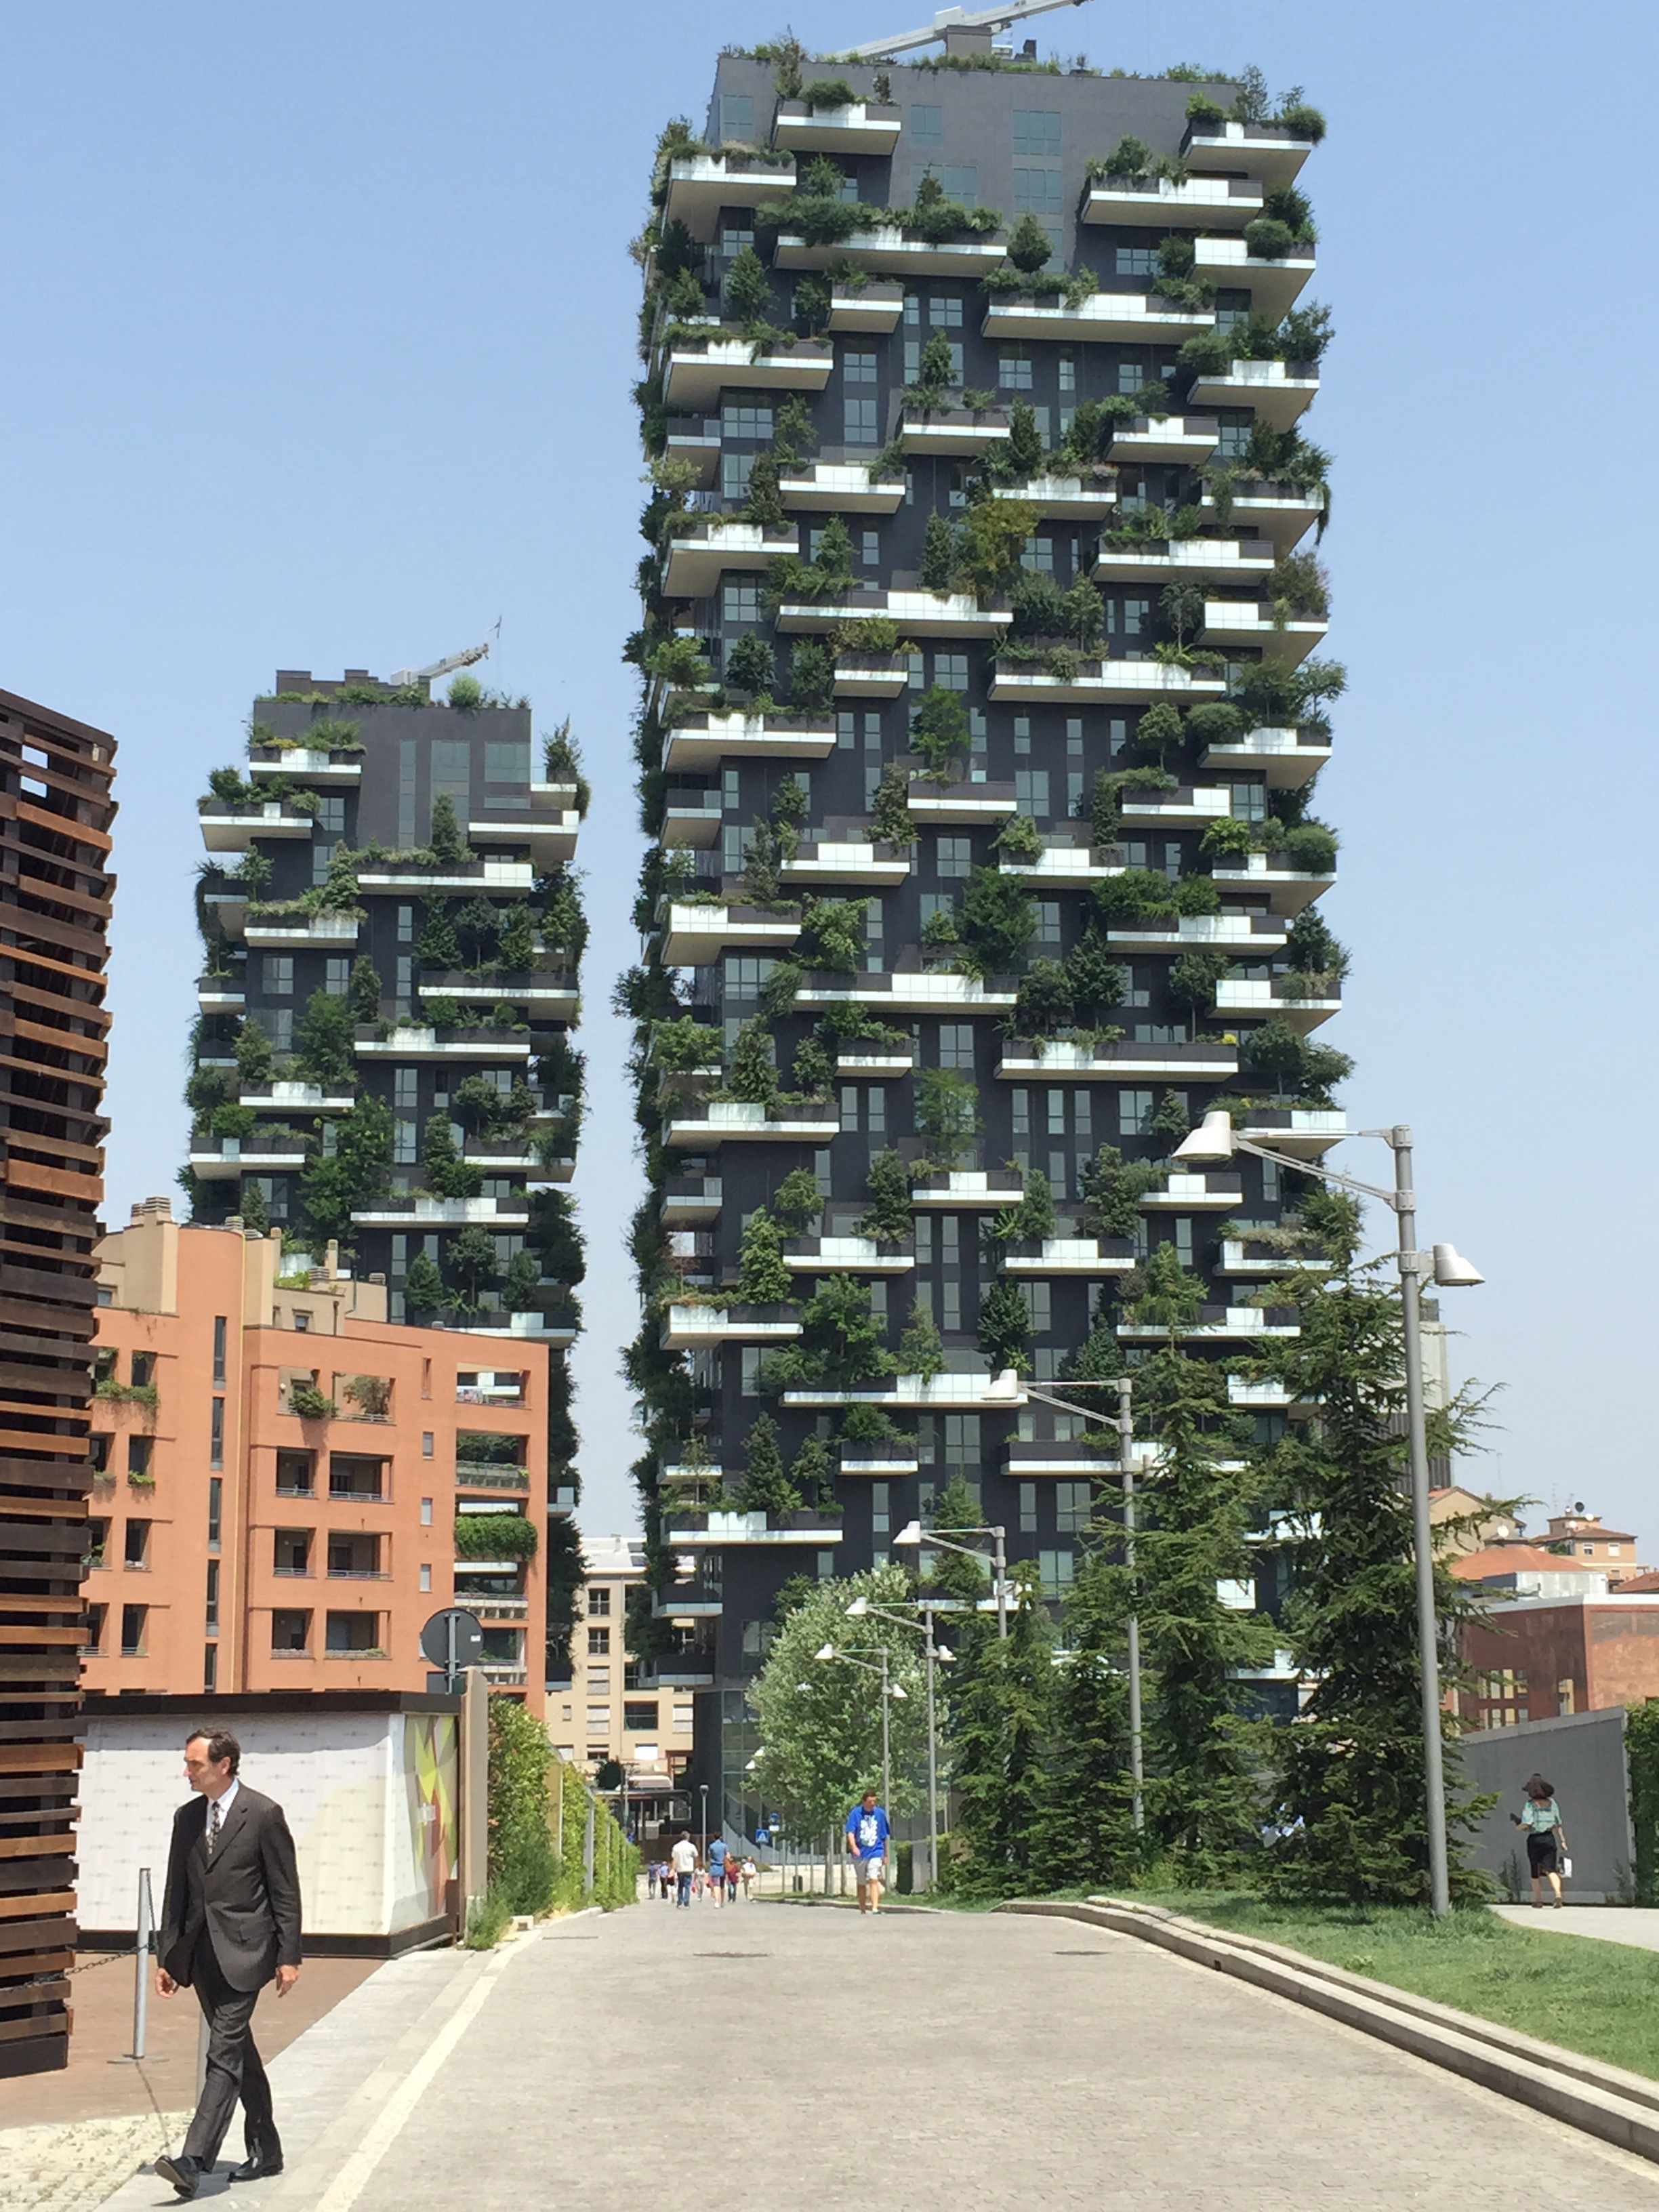 Pza Gae Aulenti green towers